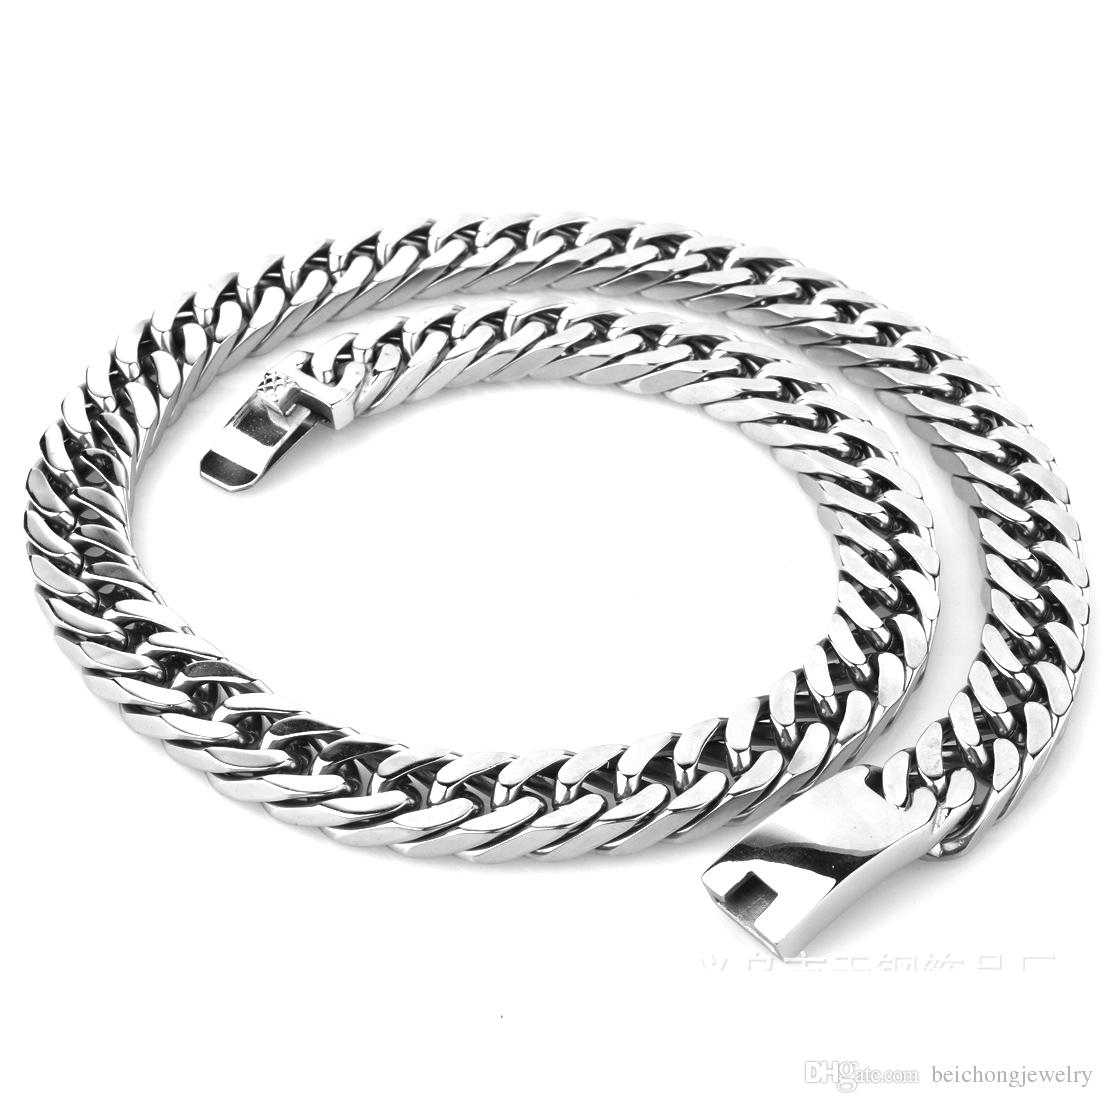 Beichong Stainless steel jewelry classic style jewelry chain NK Silver 60cm length thick chain men necklace